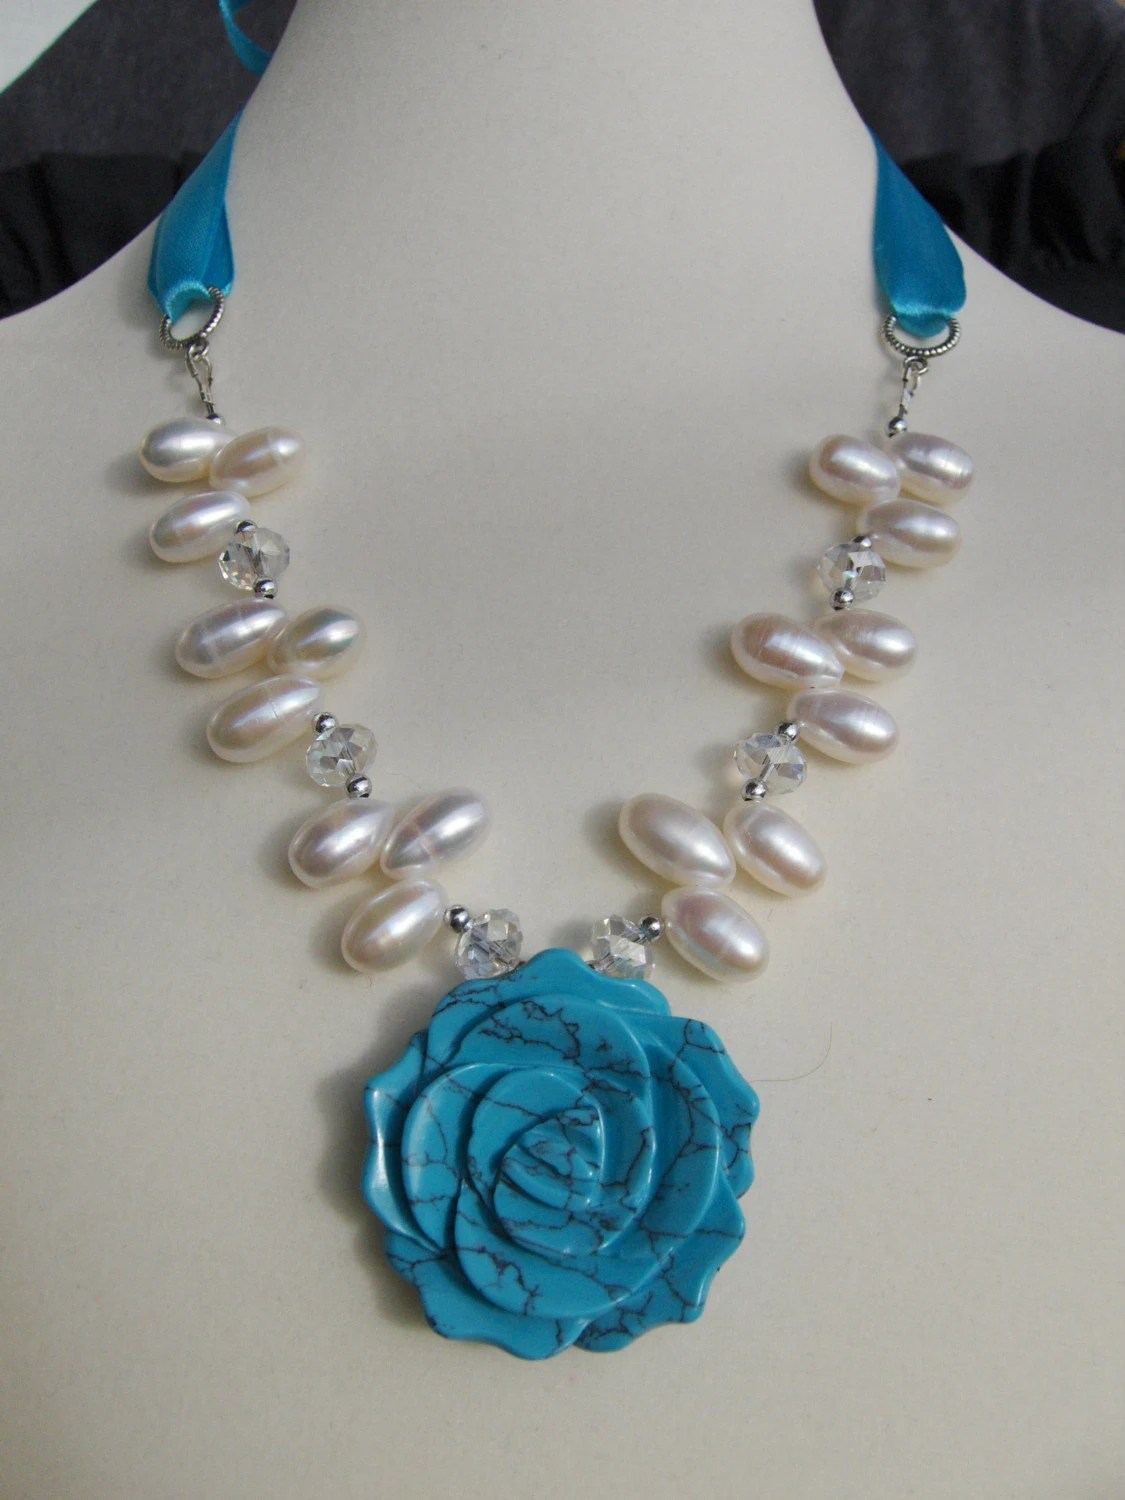 Charming turquoise flower necklace, freshwater pearls and Swarovski crystals FREE shipping